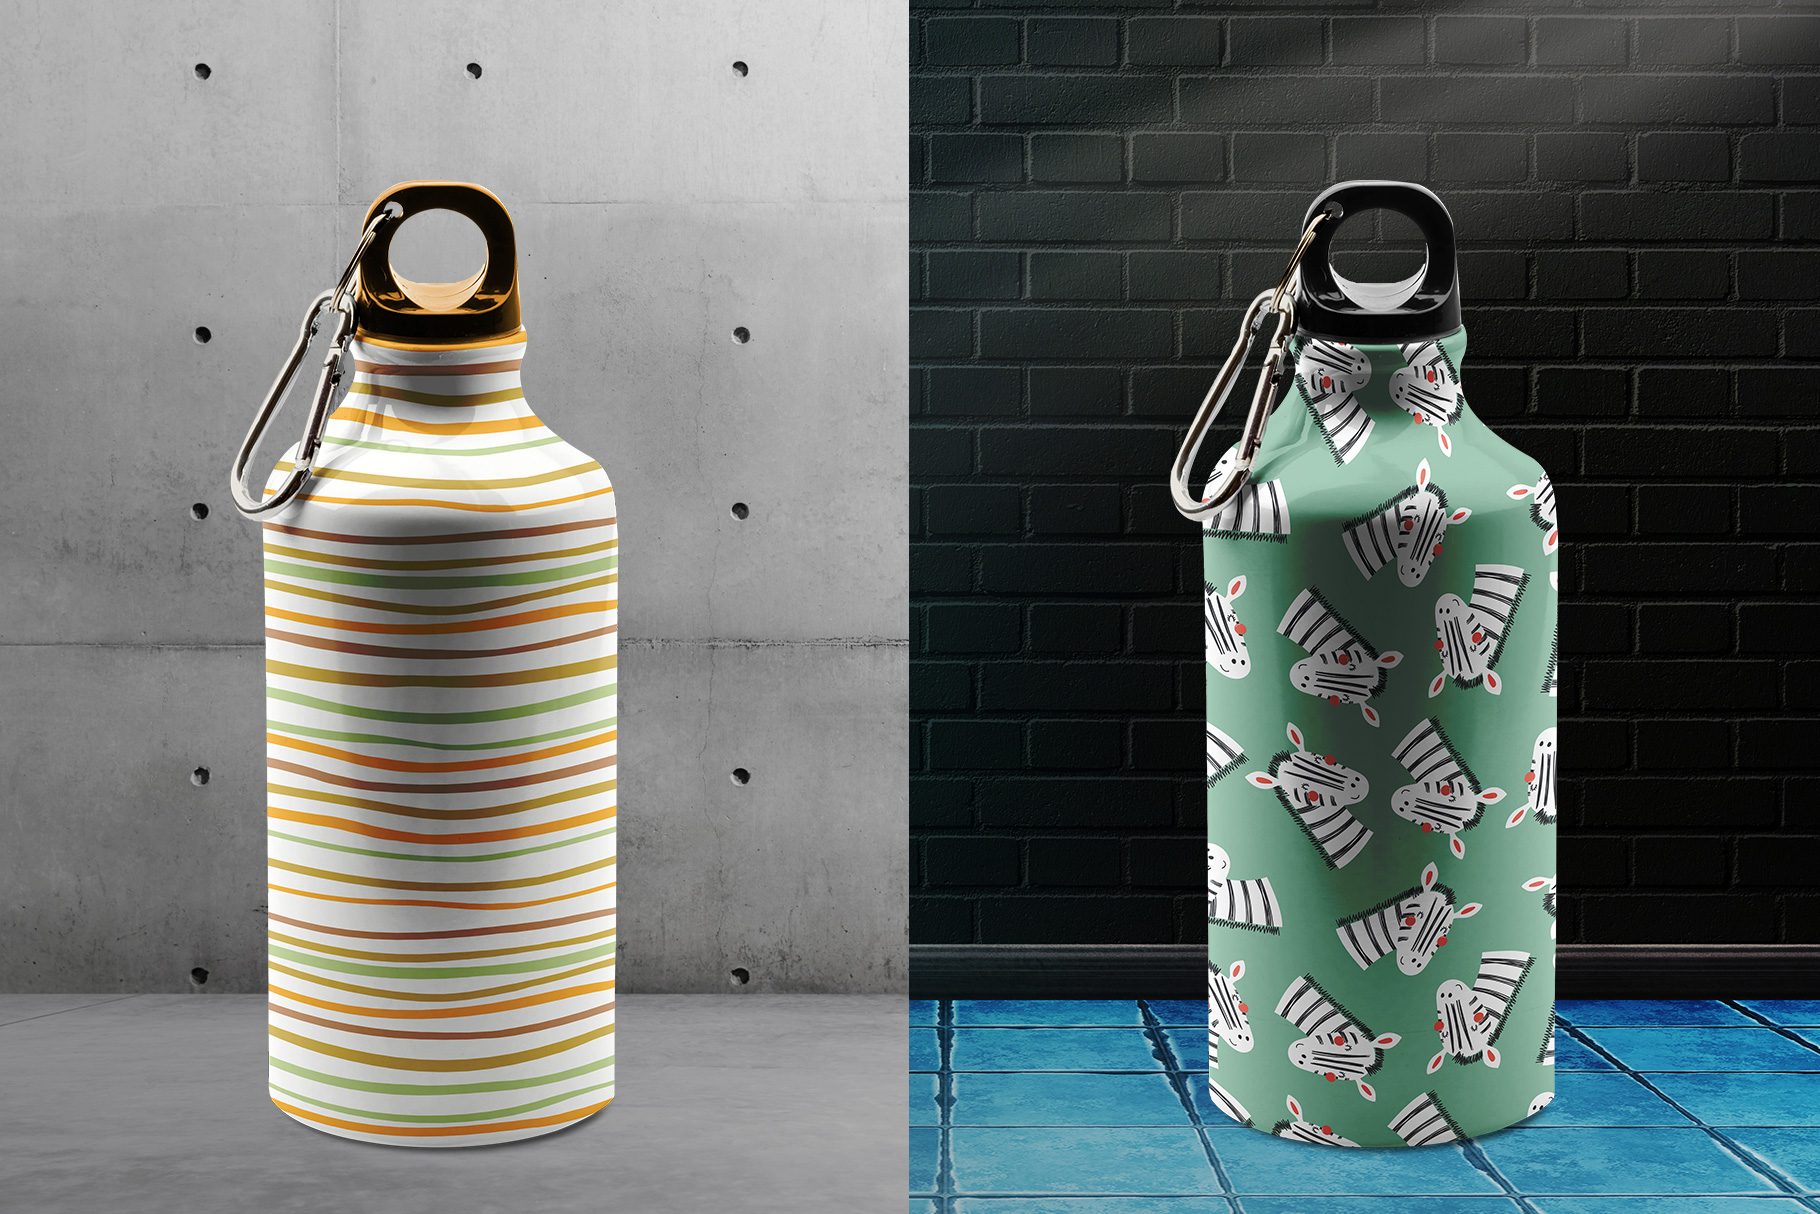 background options of the stainless sports water bottle mockup